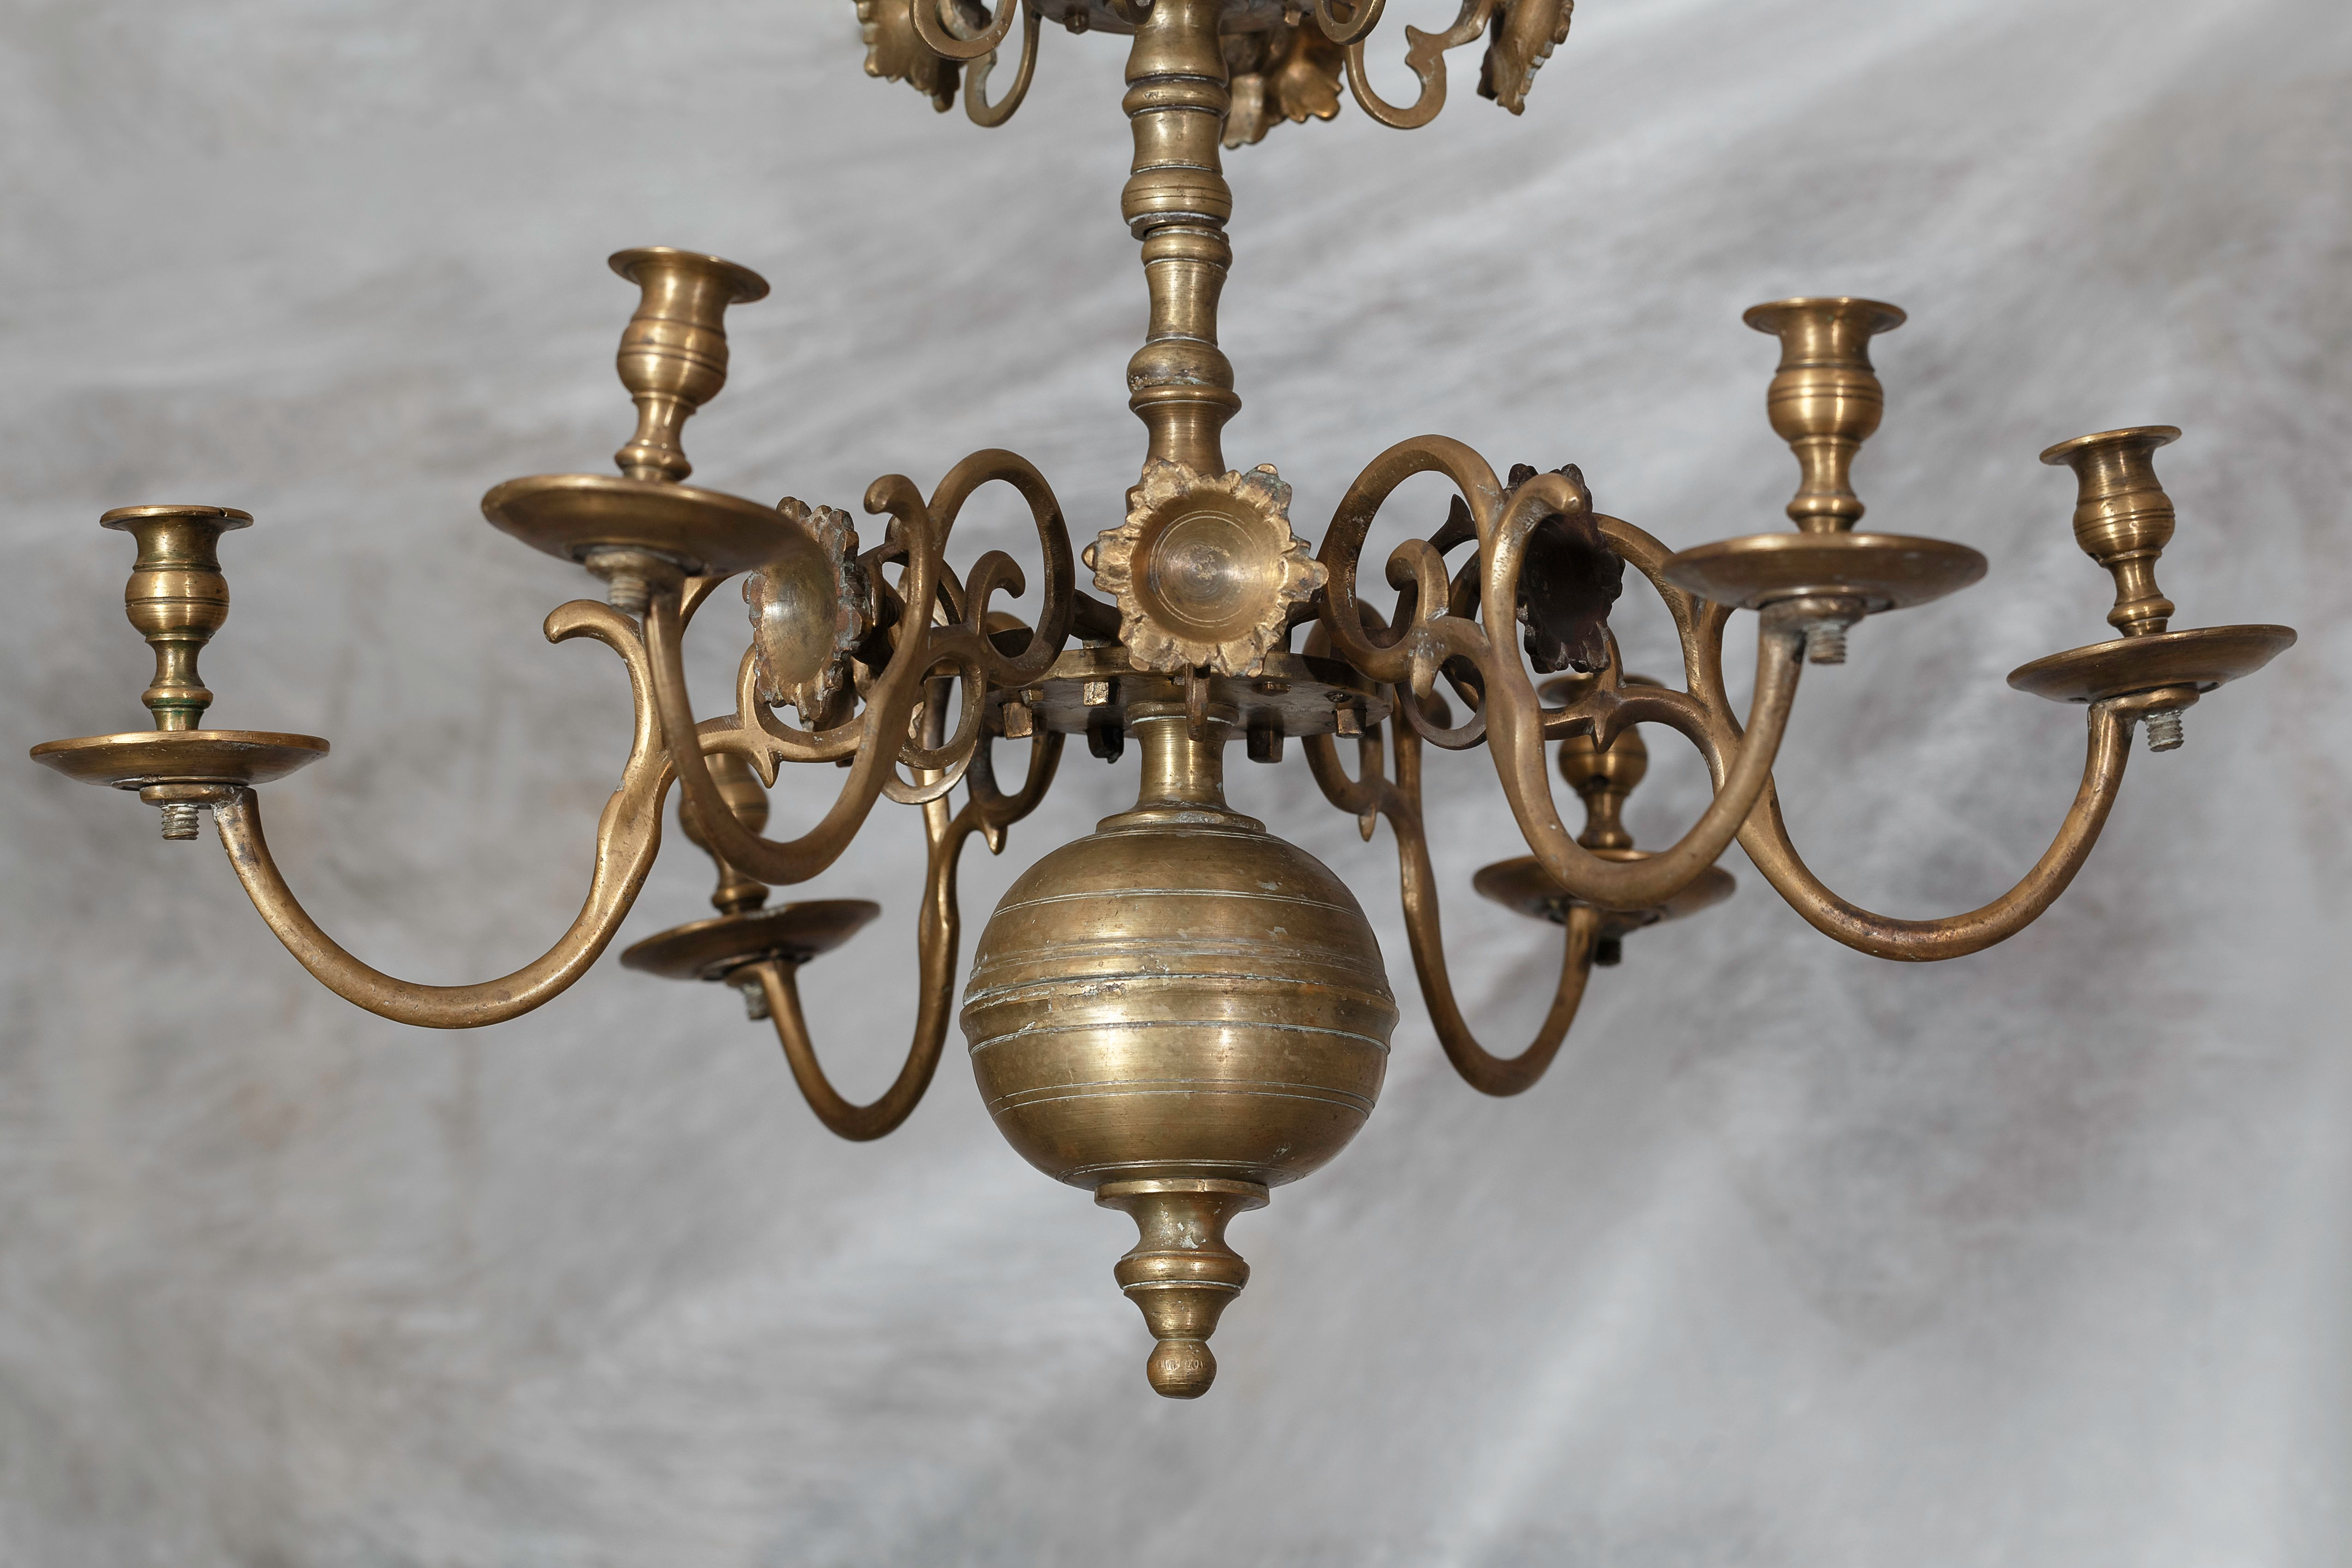 A fragment of the chandelier, the late 18th – 19th century, the National M. K. Čiurlionis Museum of Art, Tt-9556. Photo by Povilas Jarmala, 2019